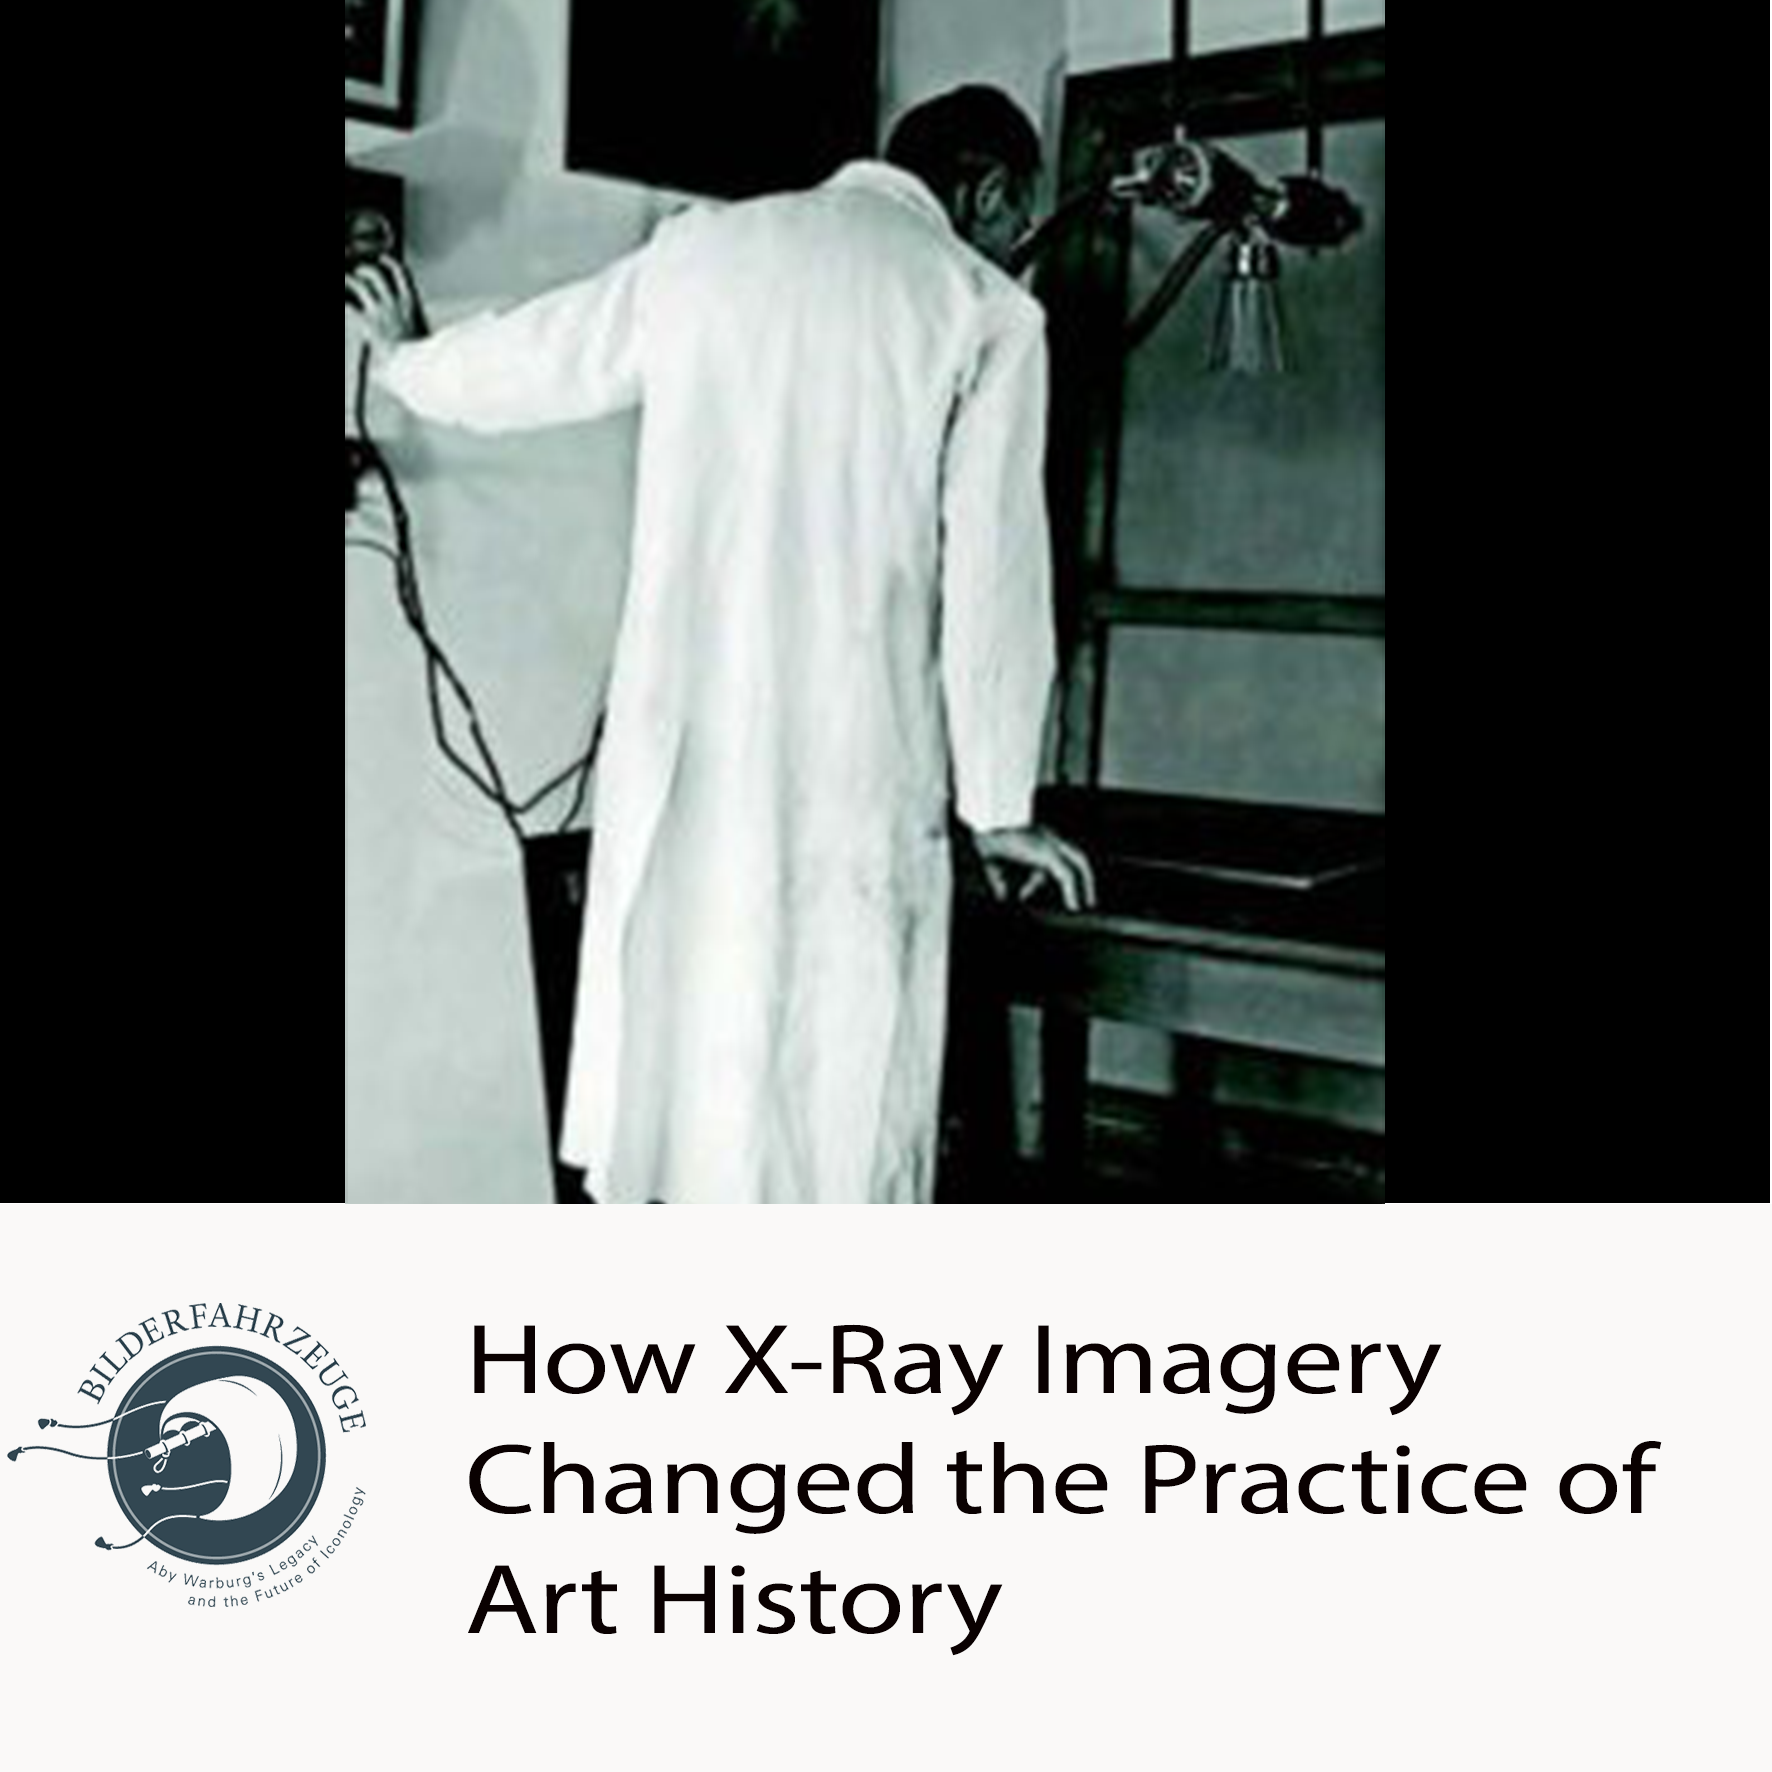 How X-Ray Imagery Changed the Practice of Art History